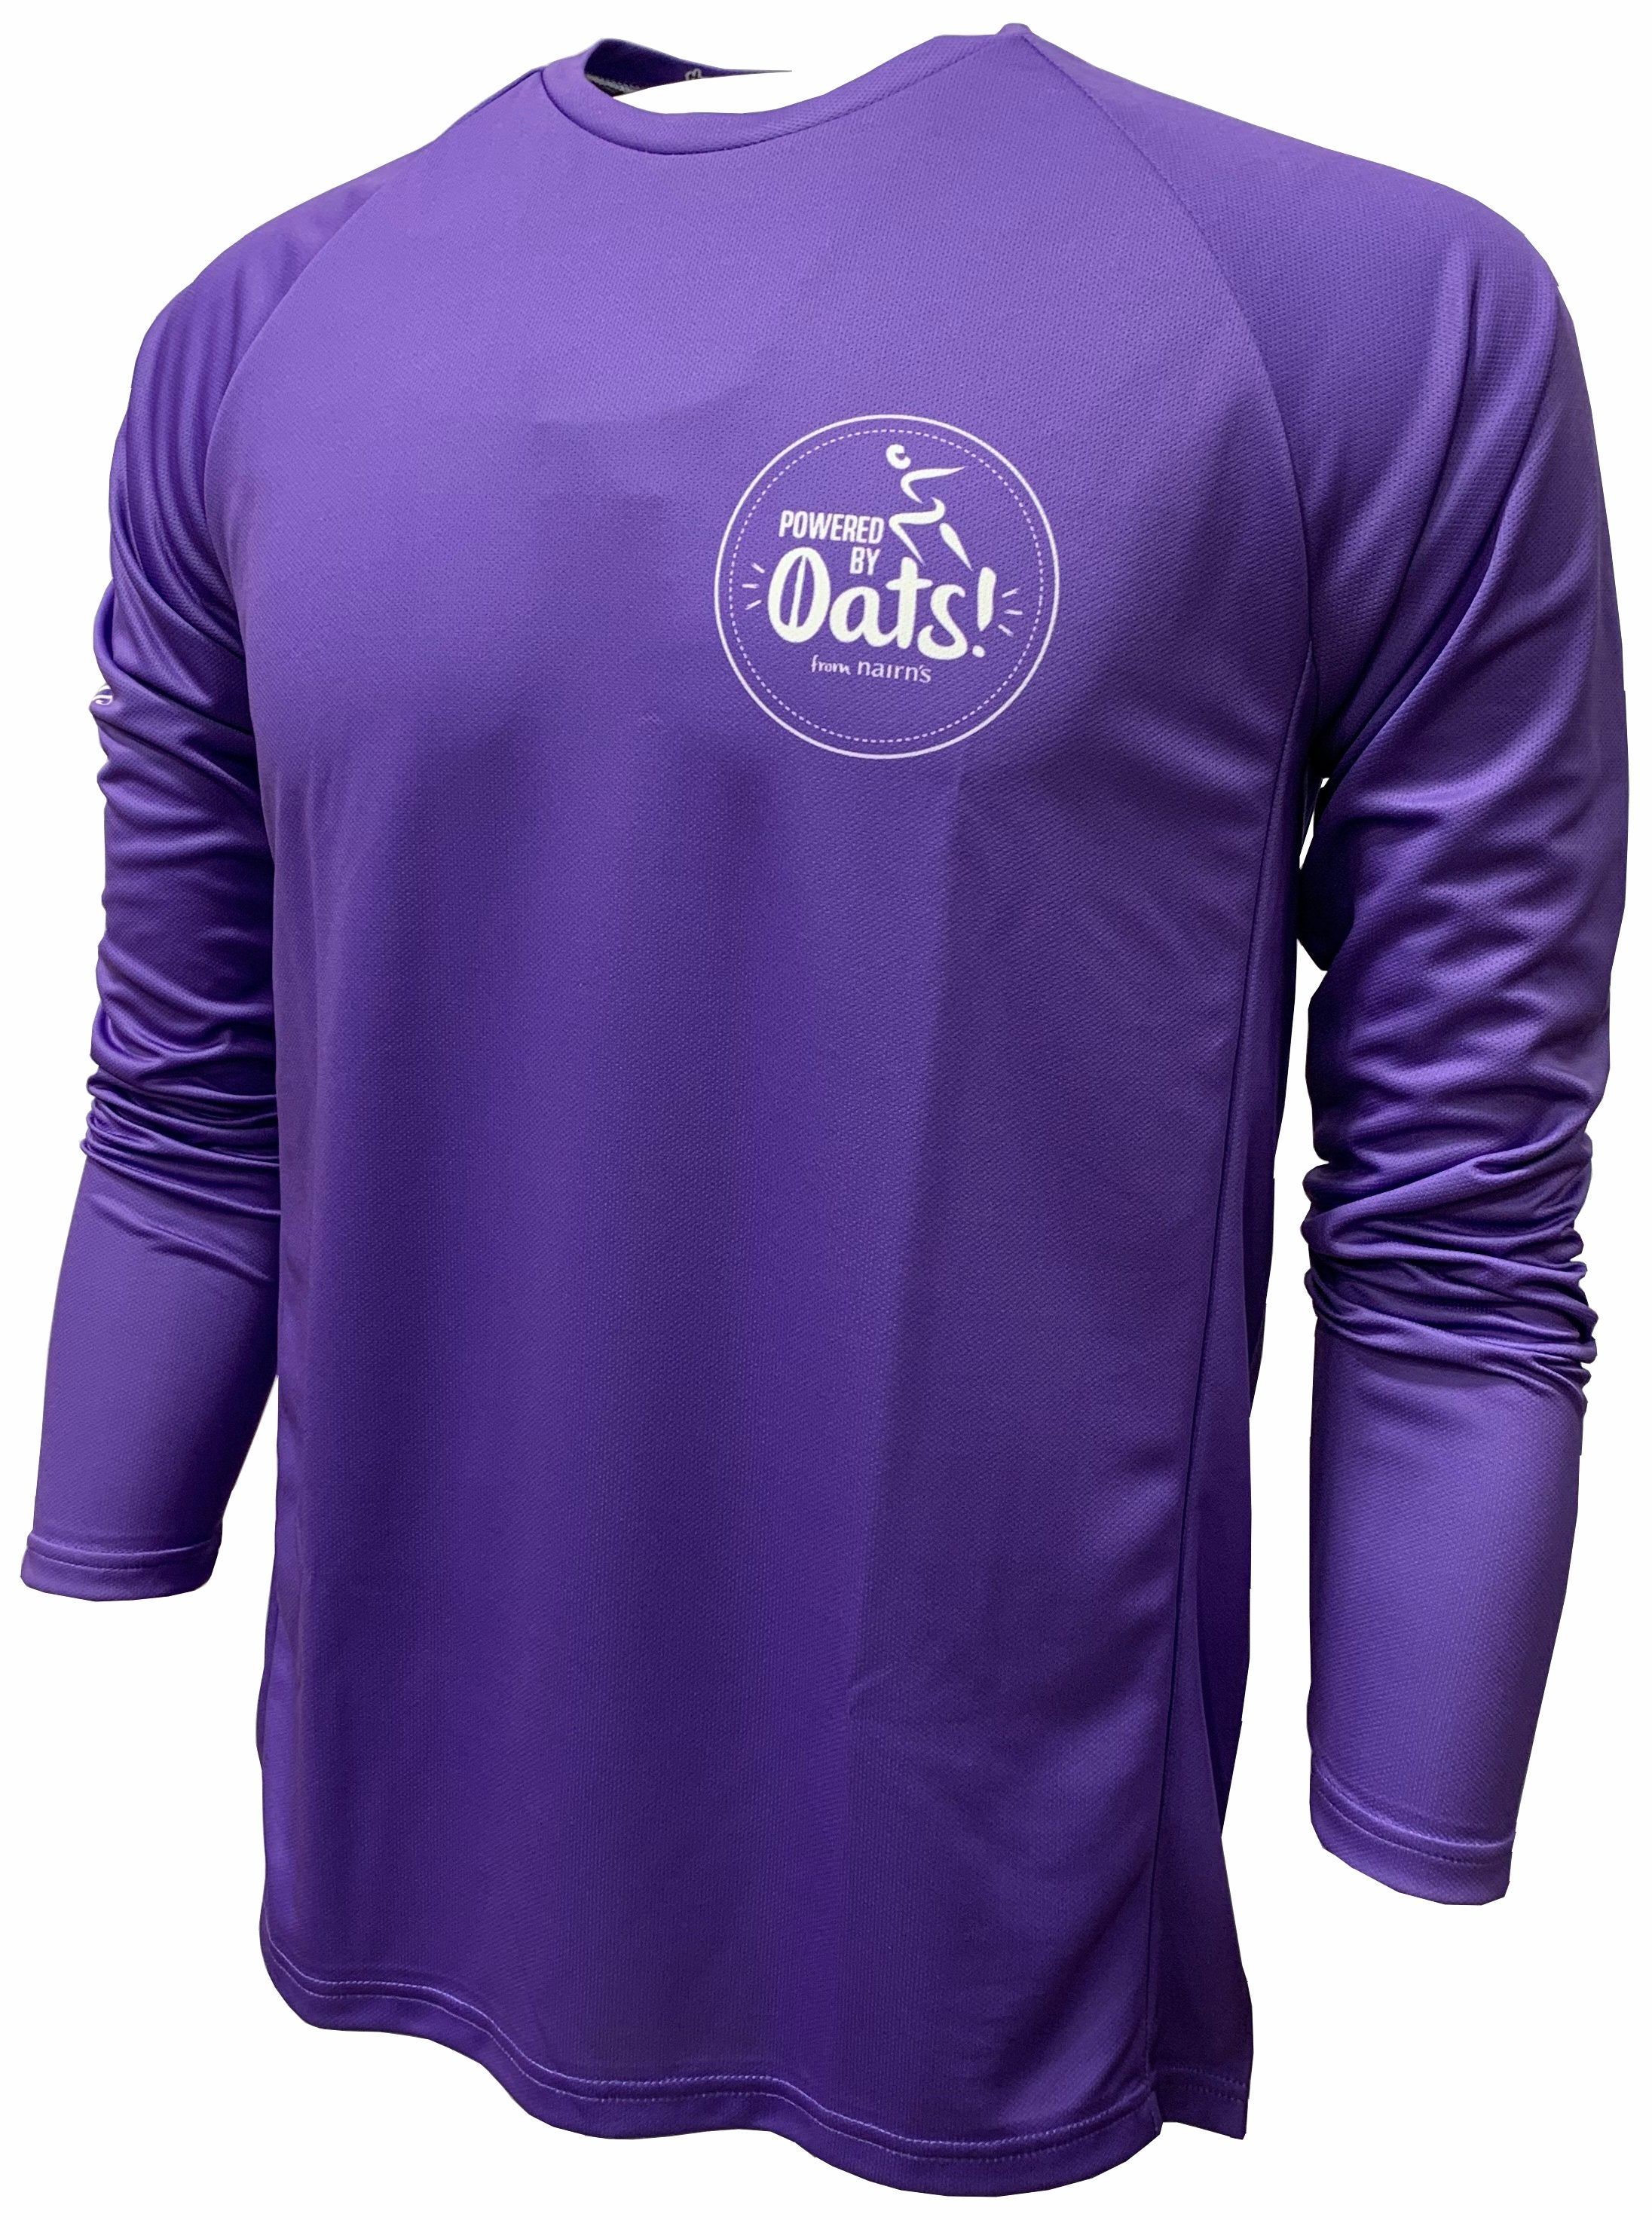 Nairn's Oatcakes Purple Enduro Cycling Jersey Front